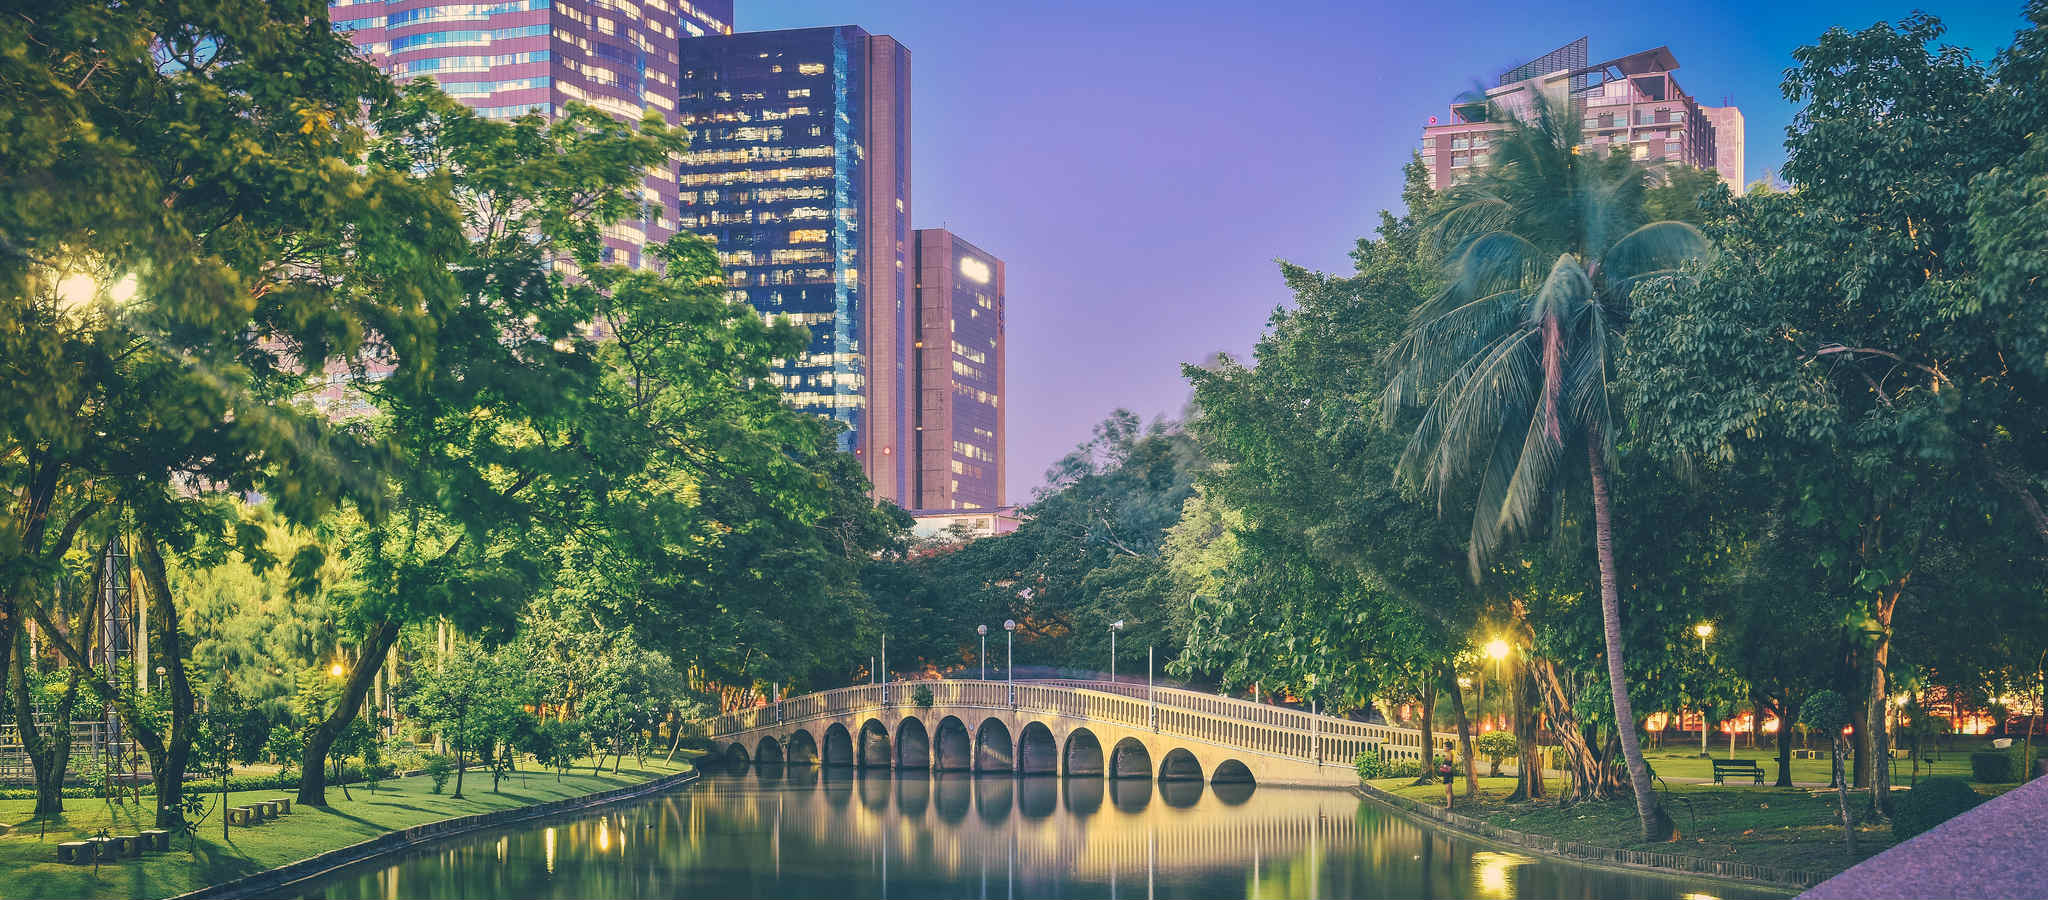 A bridge and high buildings in the background at Chatuchak Park in Bangkok